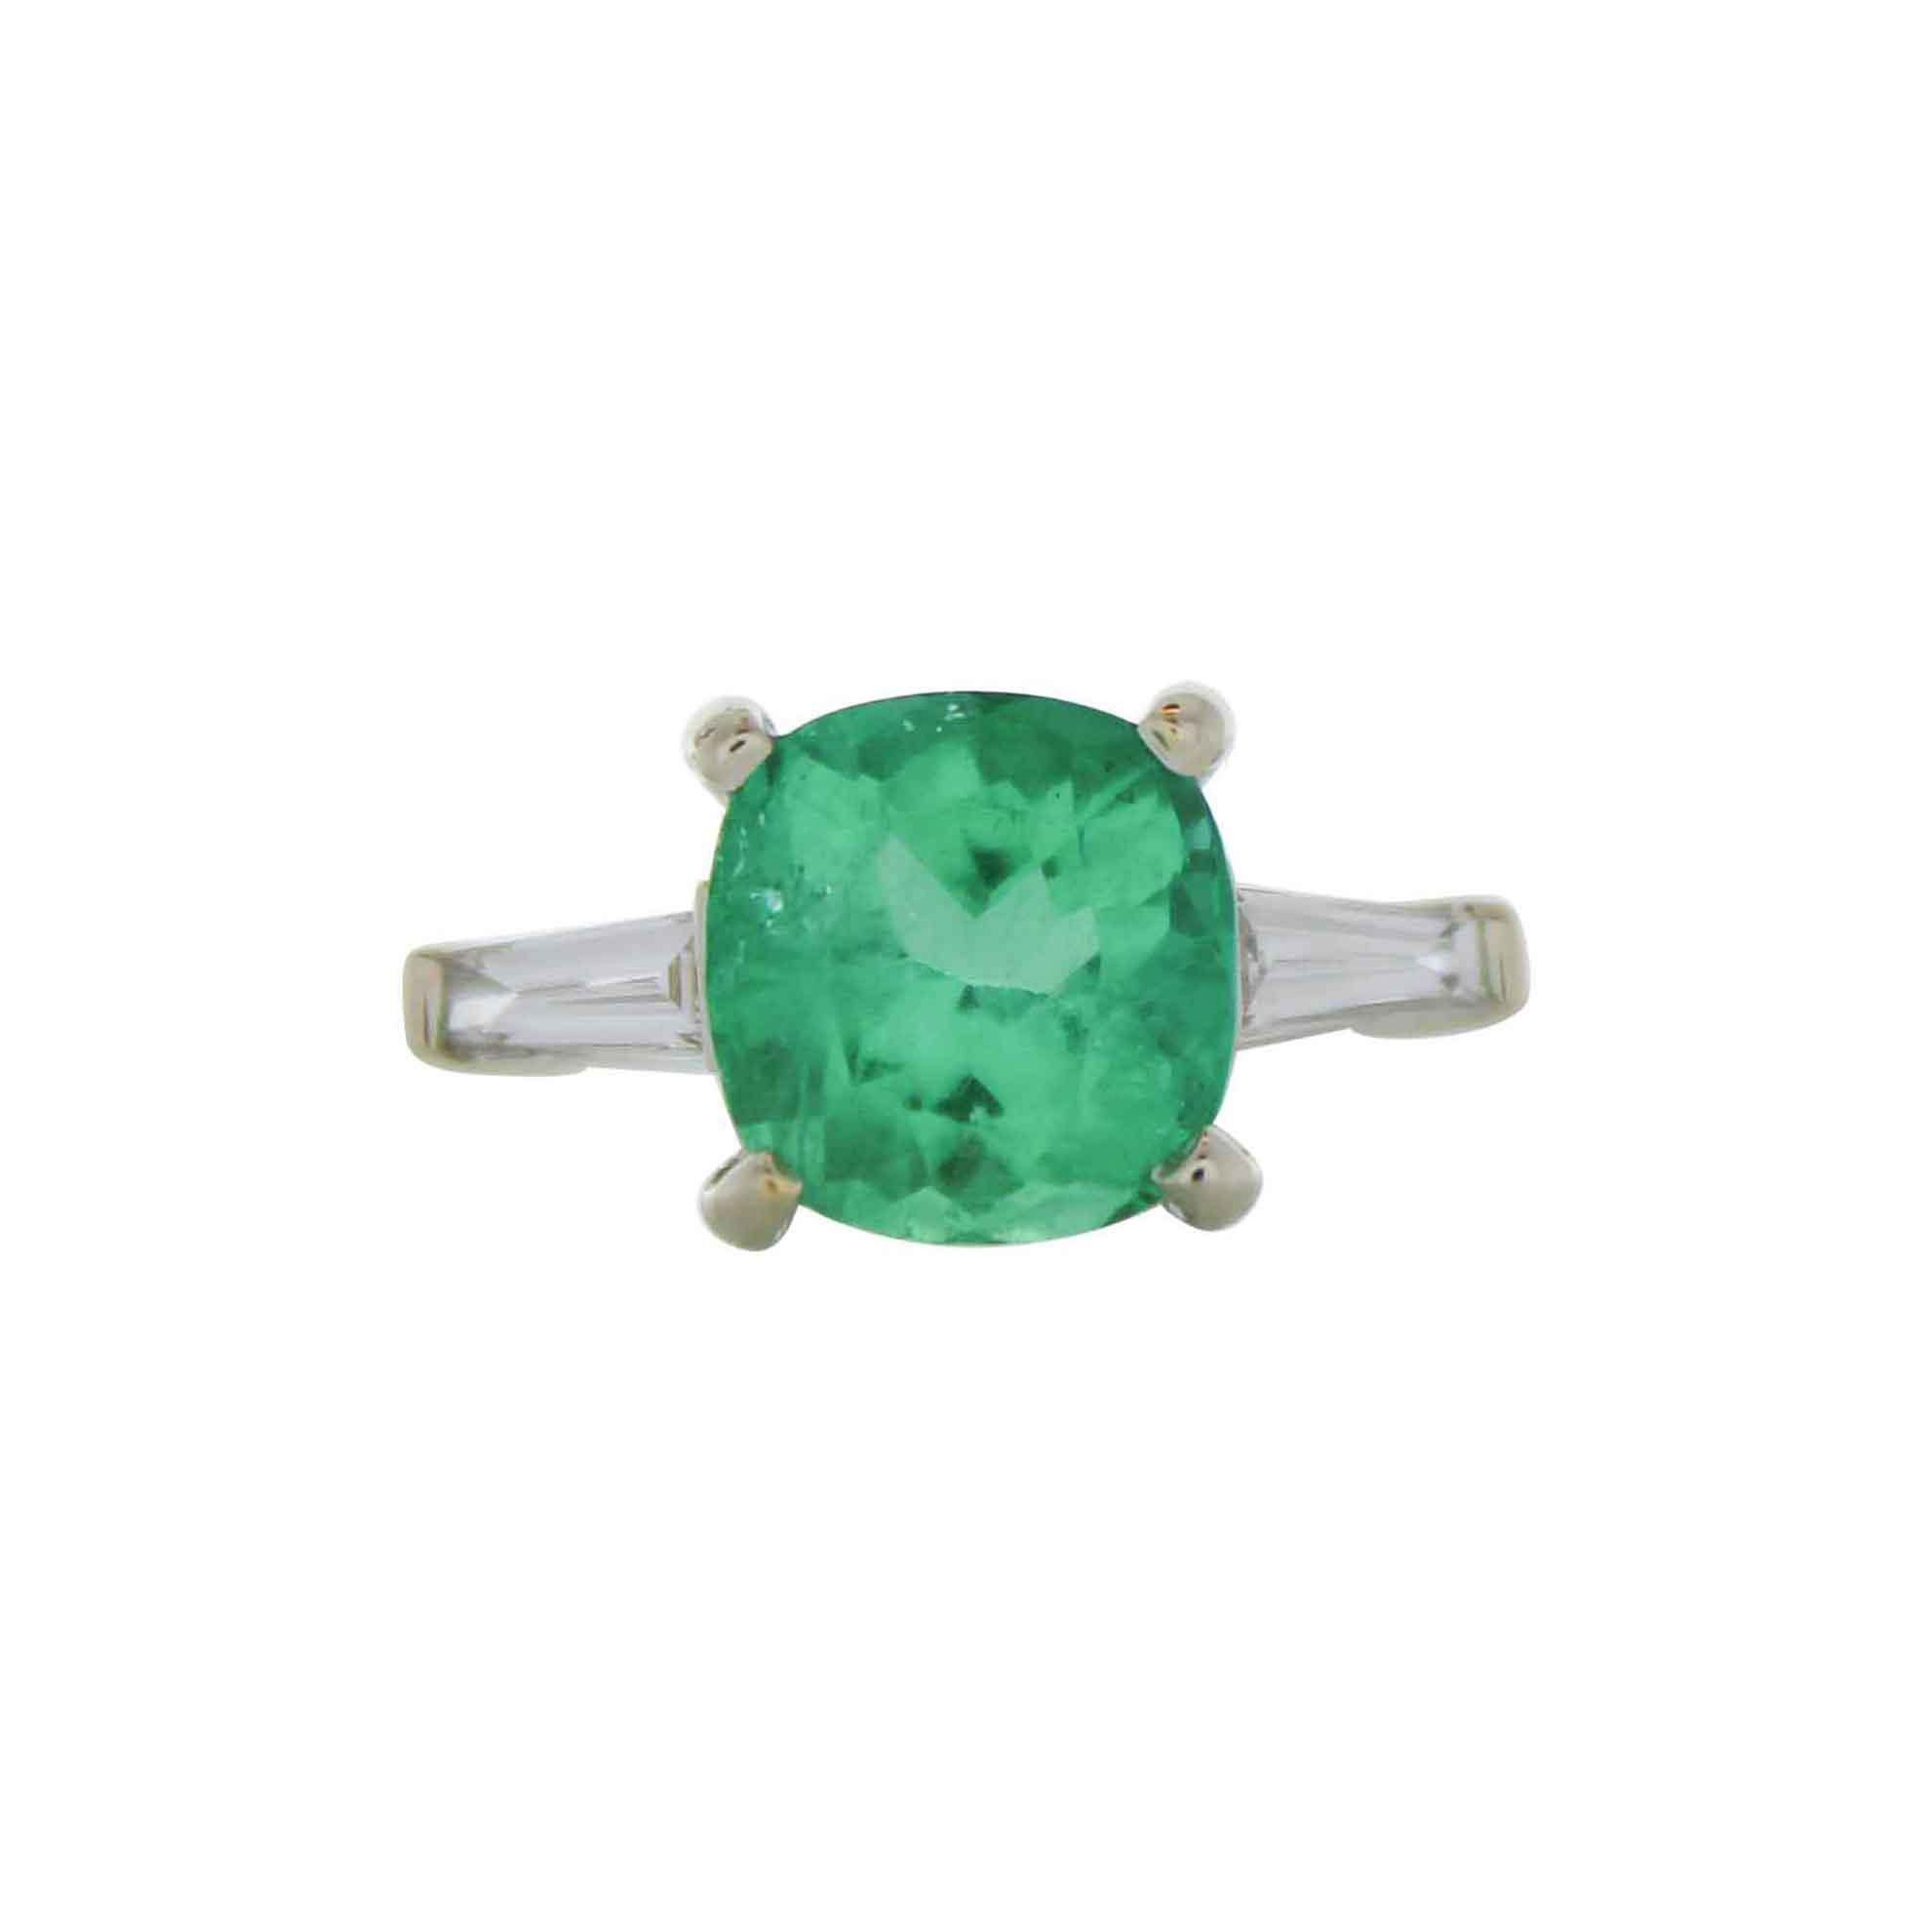 2.76 Carat Cushion Cut Emerald & Diamond Cocktail Ring in 18 K White Gold